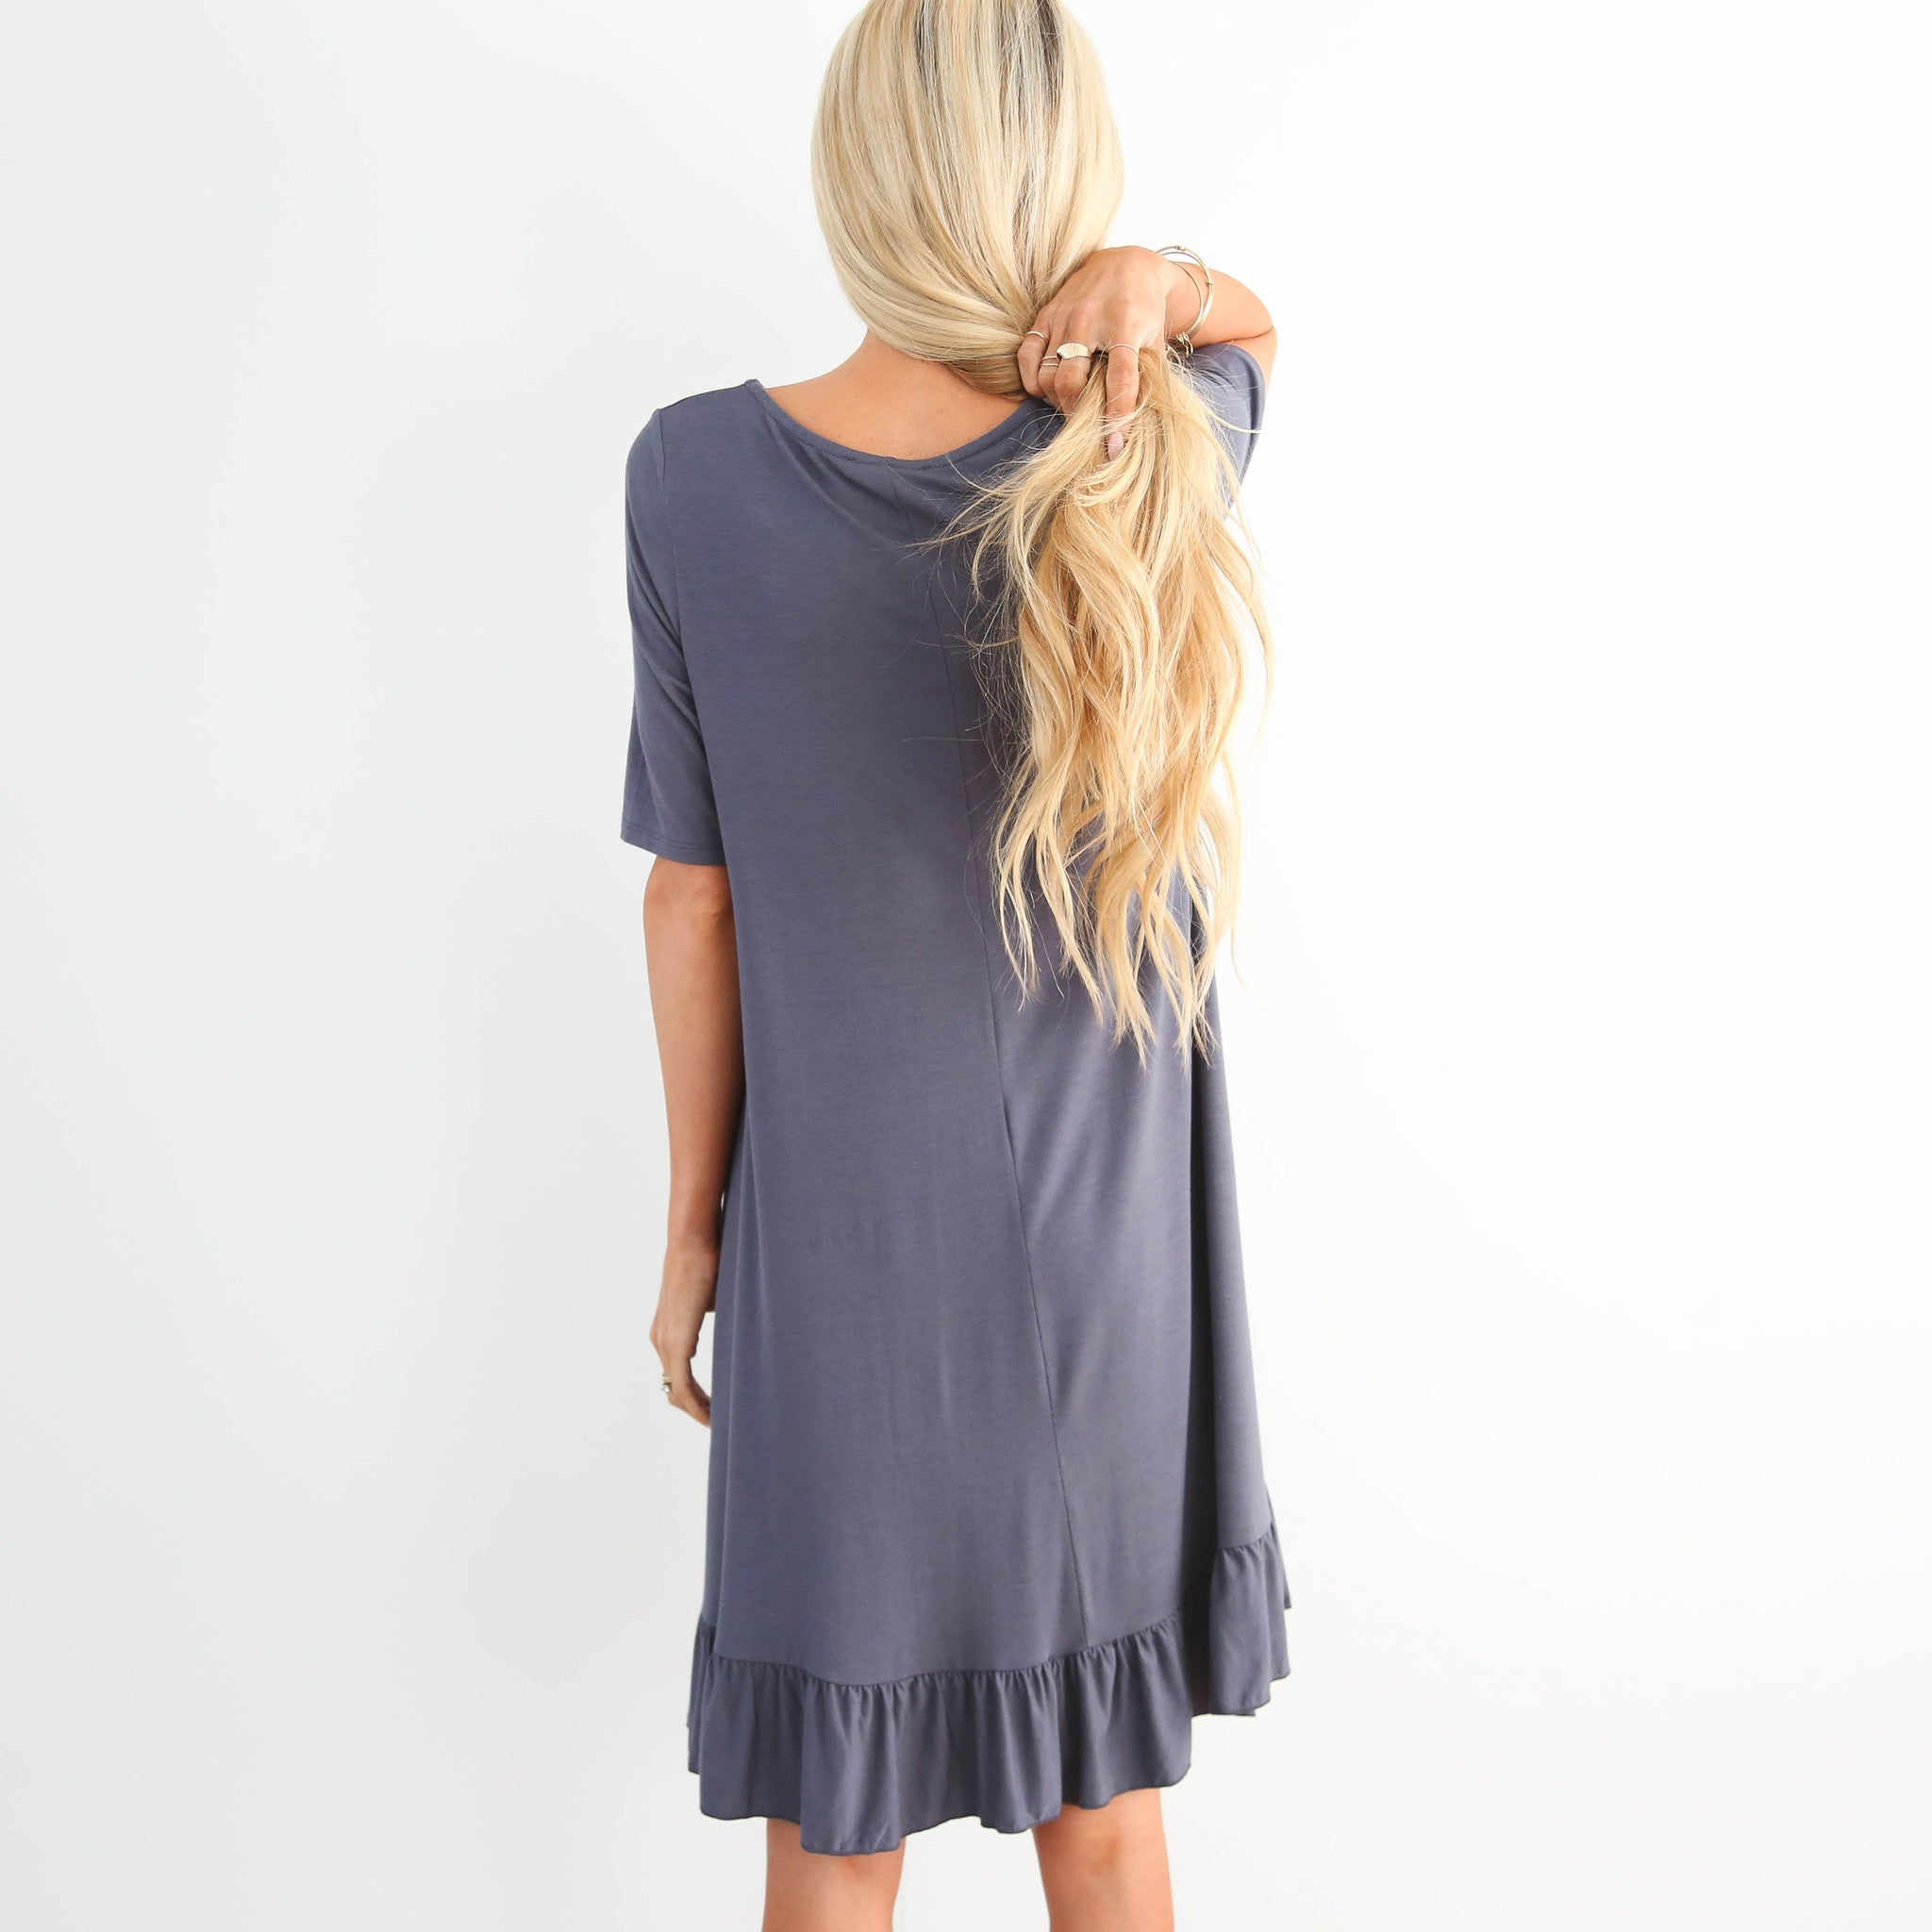 S & Co. Melody Dress in Charcoal